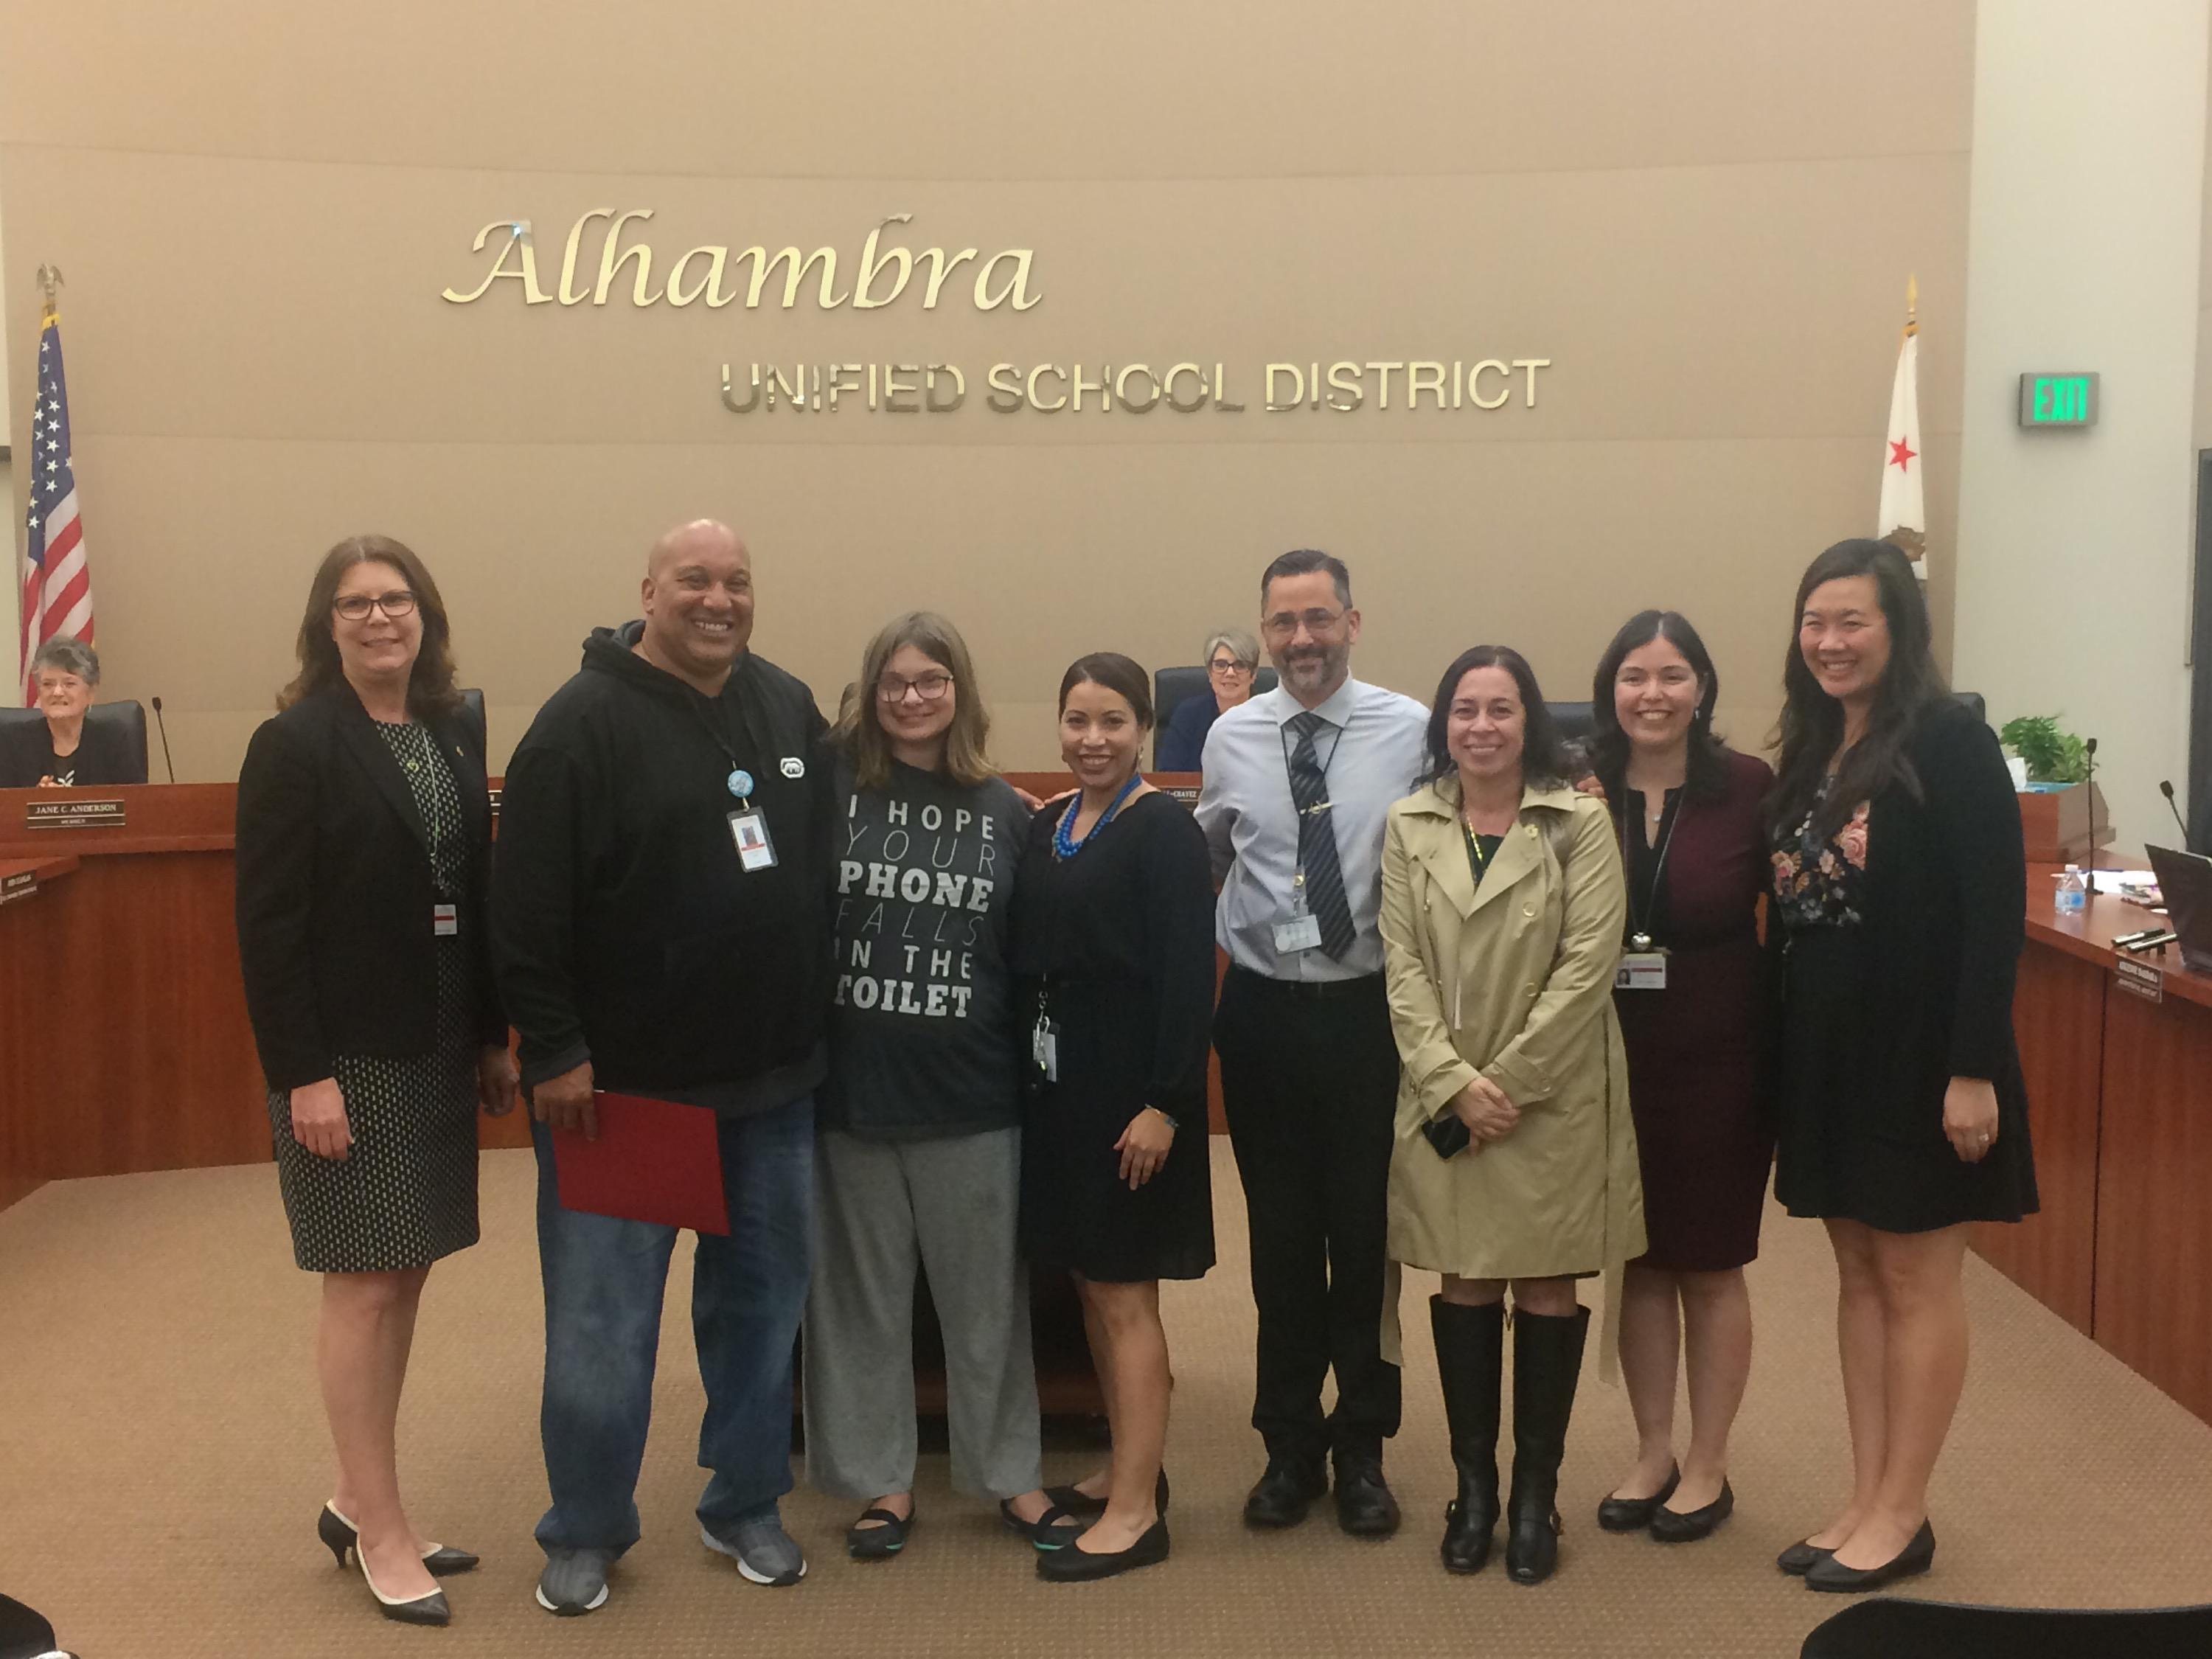 Anthony France with the AUSD Sup and AHS staff.